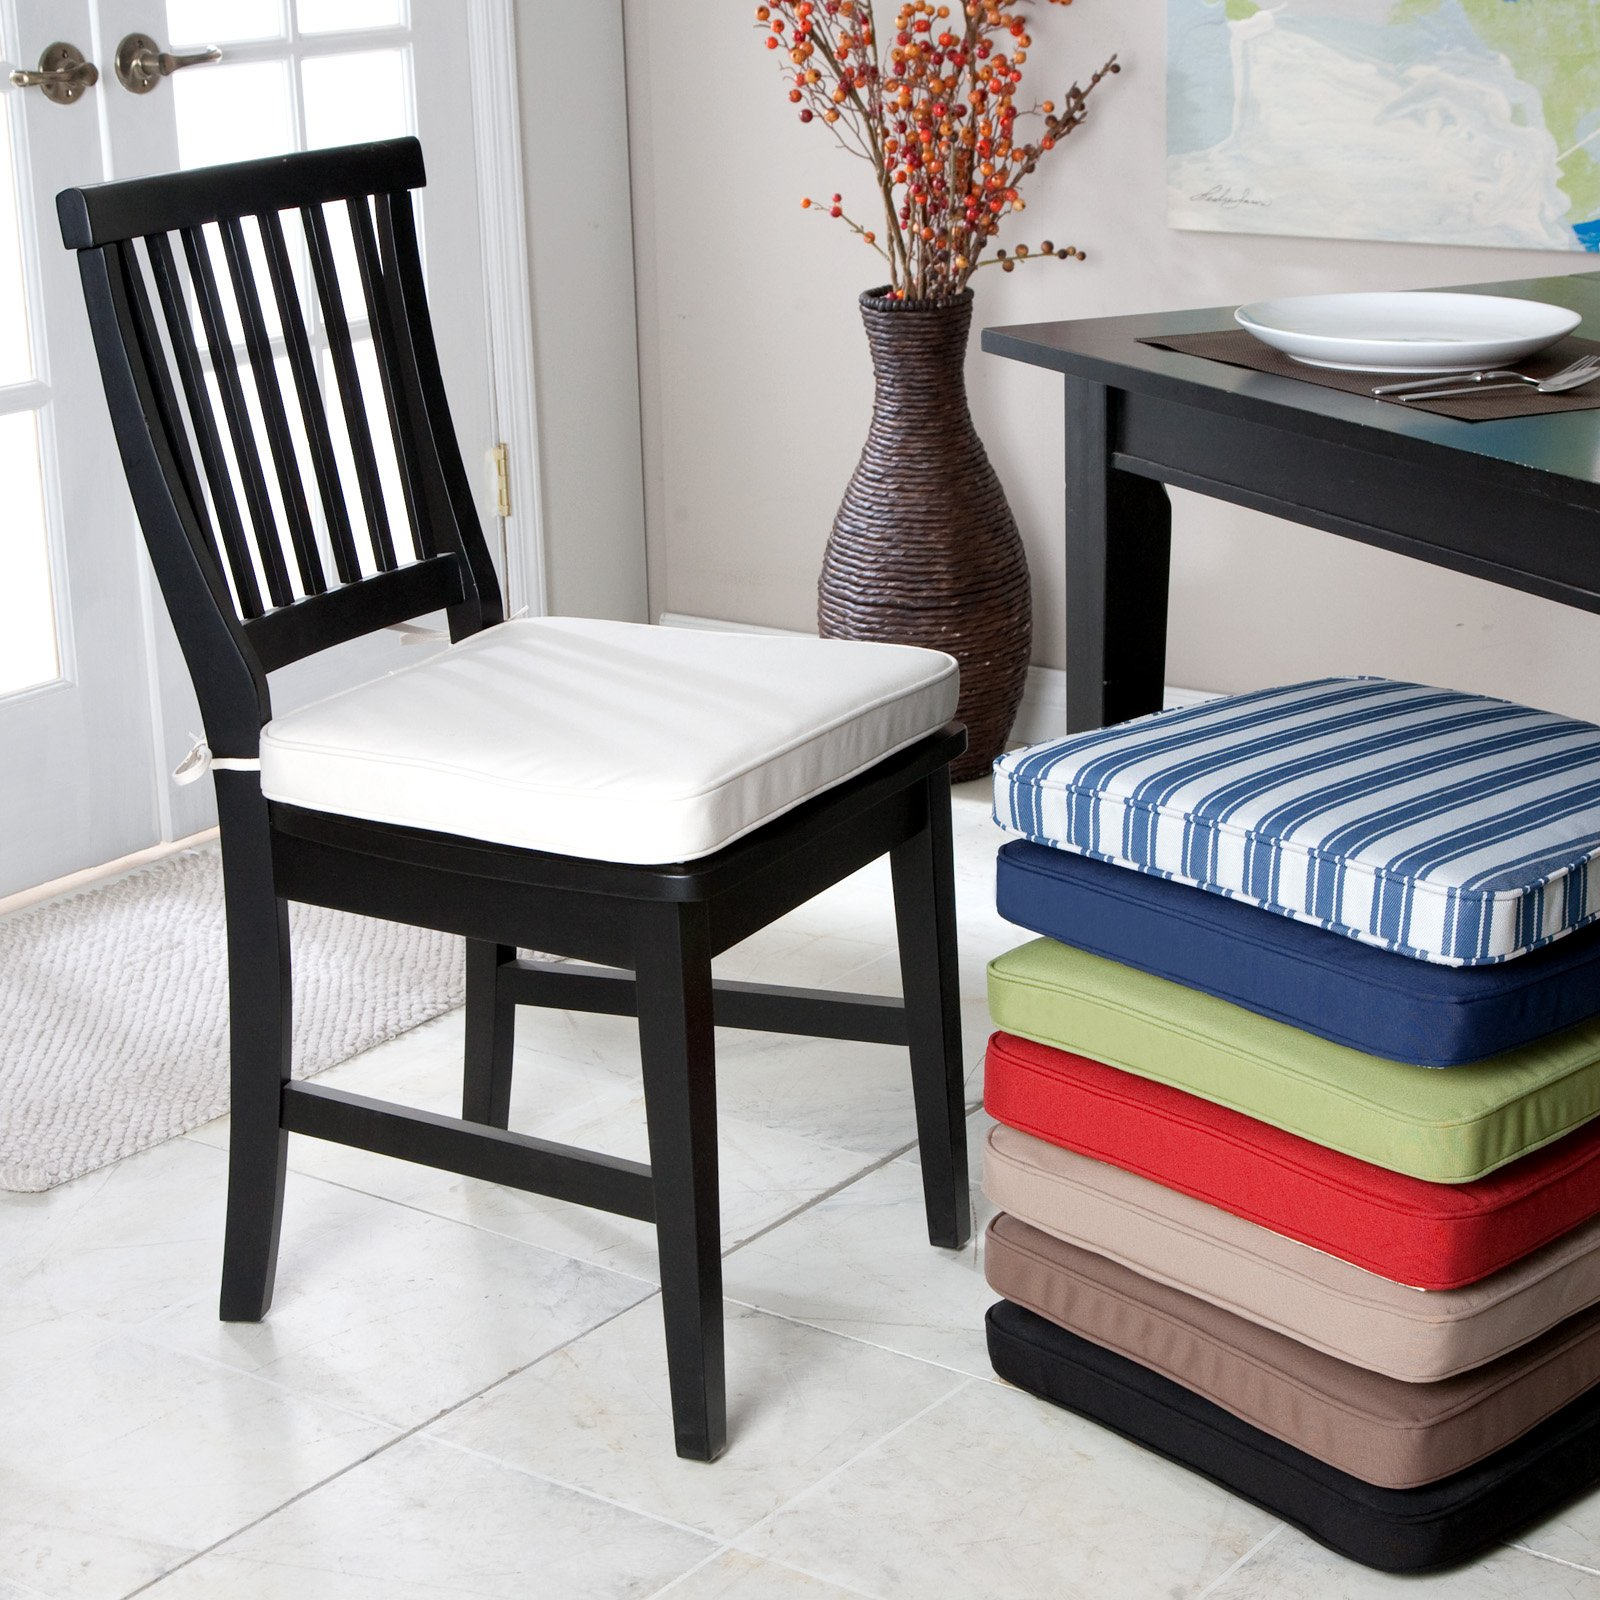 Seat Cushion For Dining Room Chairs Dining Room Chair Slipcover Patterns Le